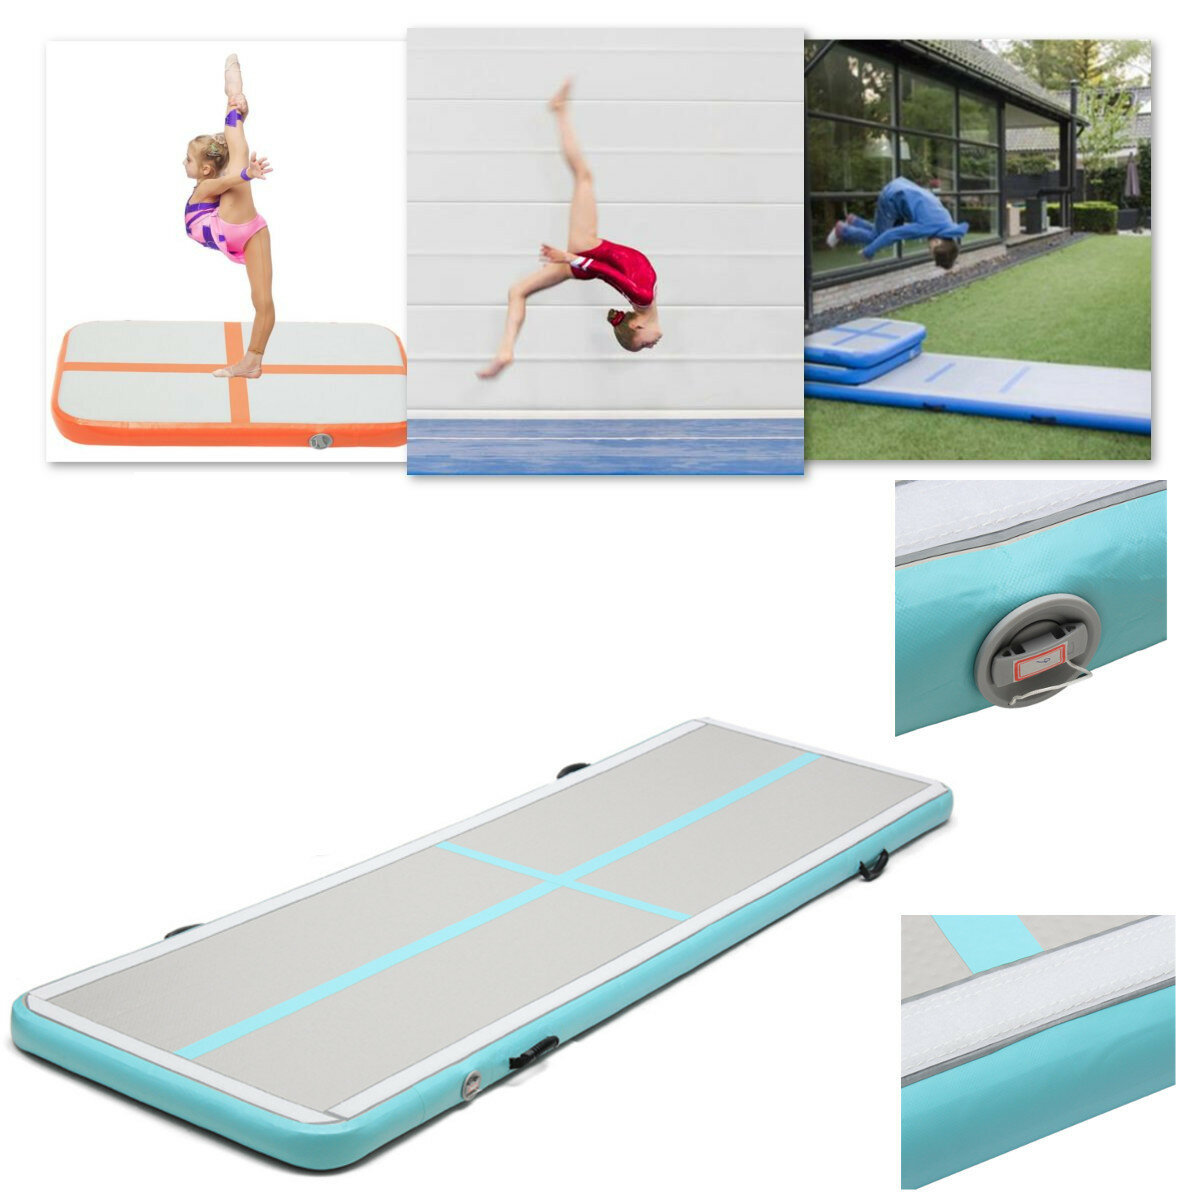 121be70ddd0e 118x39x4inch Airtrack Gymnastics Mat Floor Home Inflatable GYM Air Track  Mat Tumbling Mat GYM NEW COD